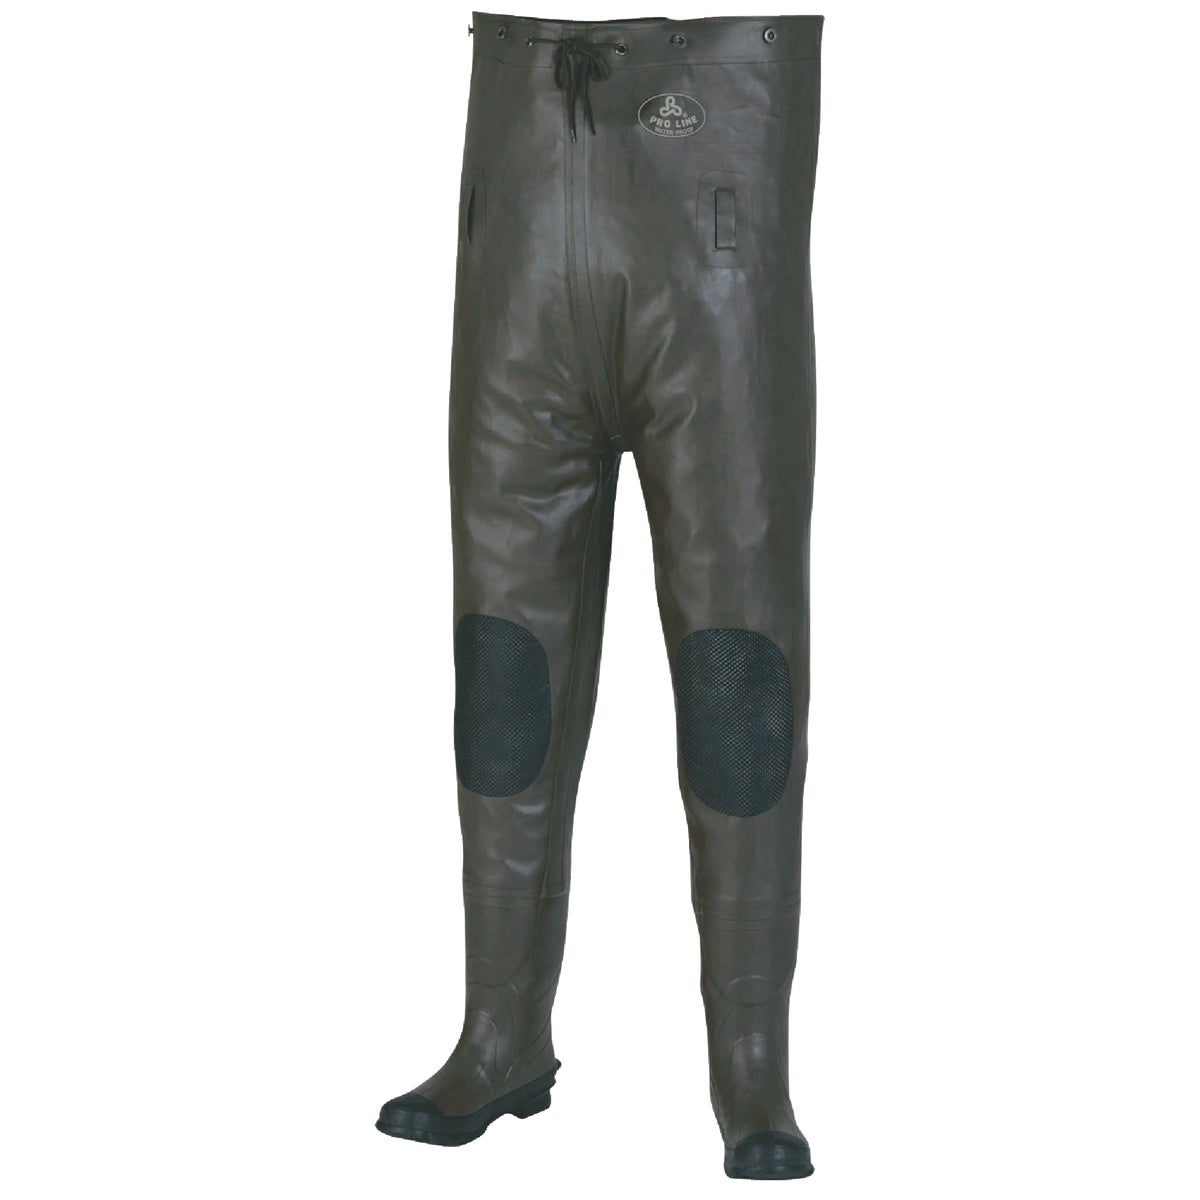 SZ 8 CHEST WADER - 2012-8 by Pro Line Mfg Co